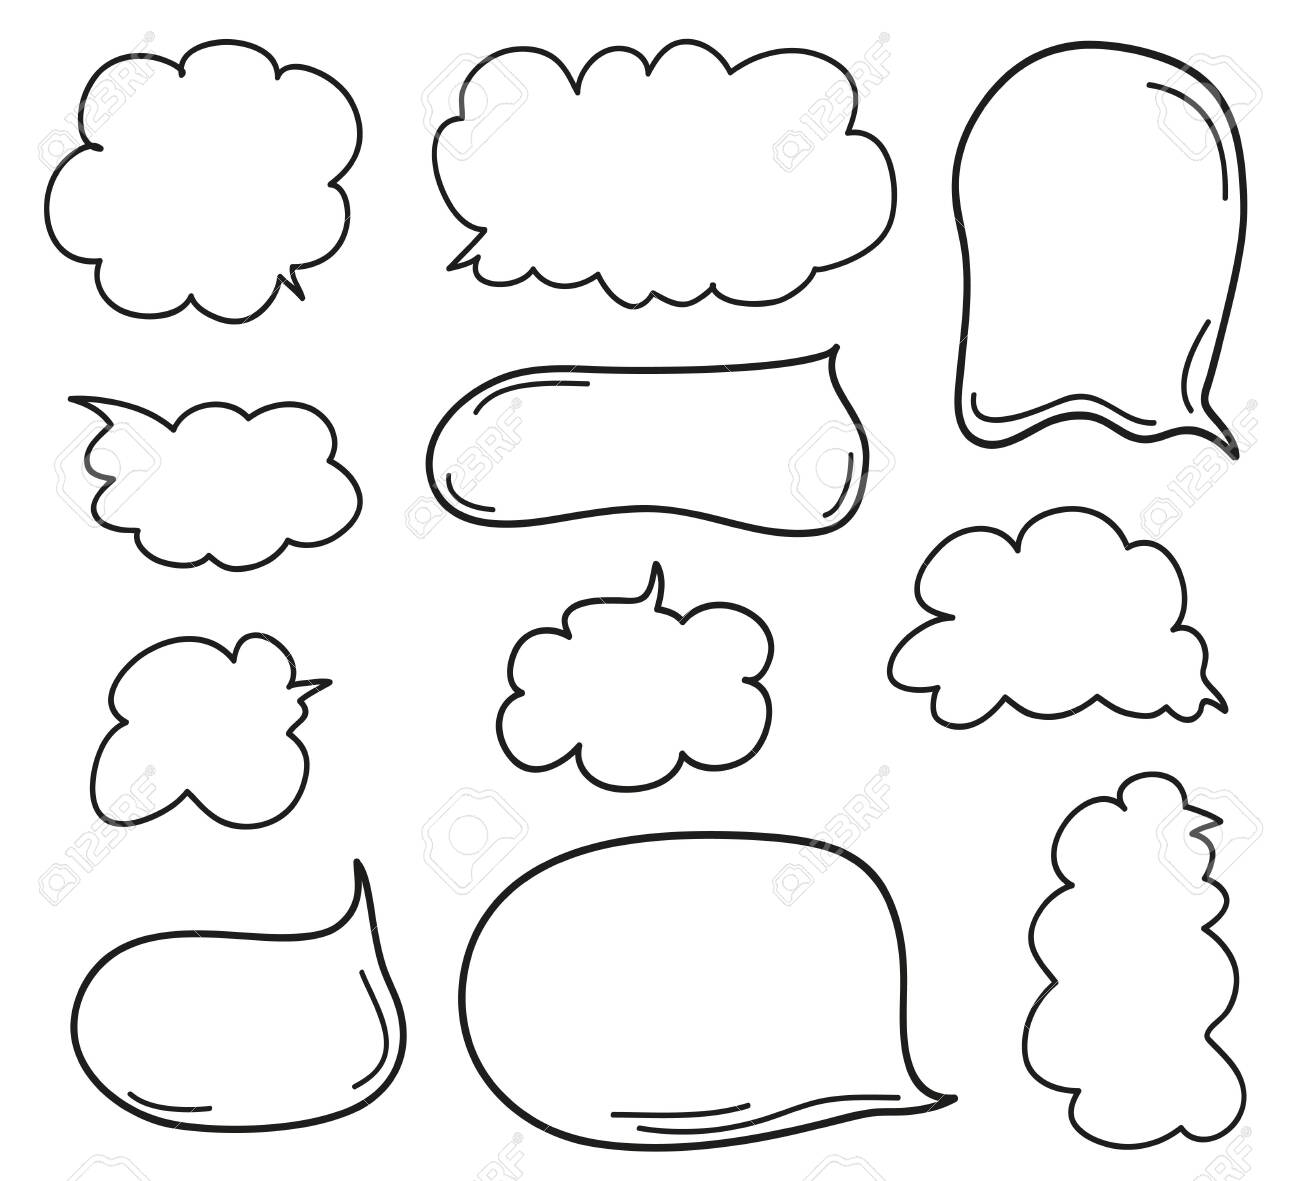 Hand drawn infographic elements on isolation background. Set of think and talk speech bubbles. Doodles on white. Black and white illustration - 127194014